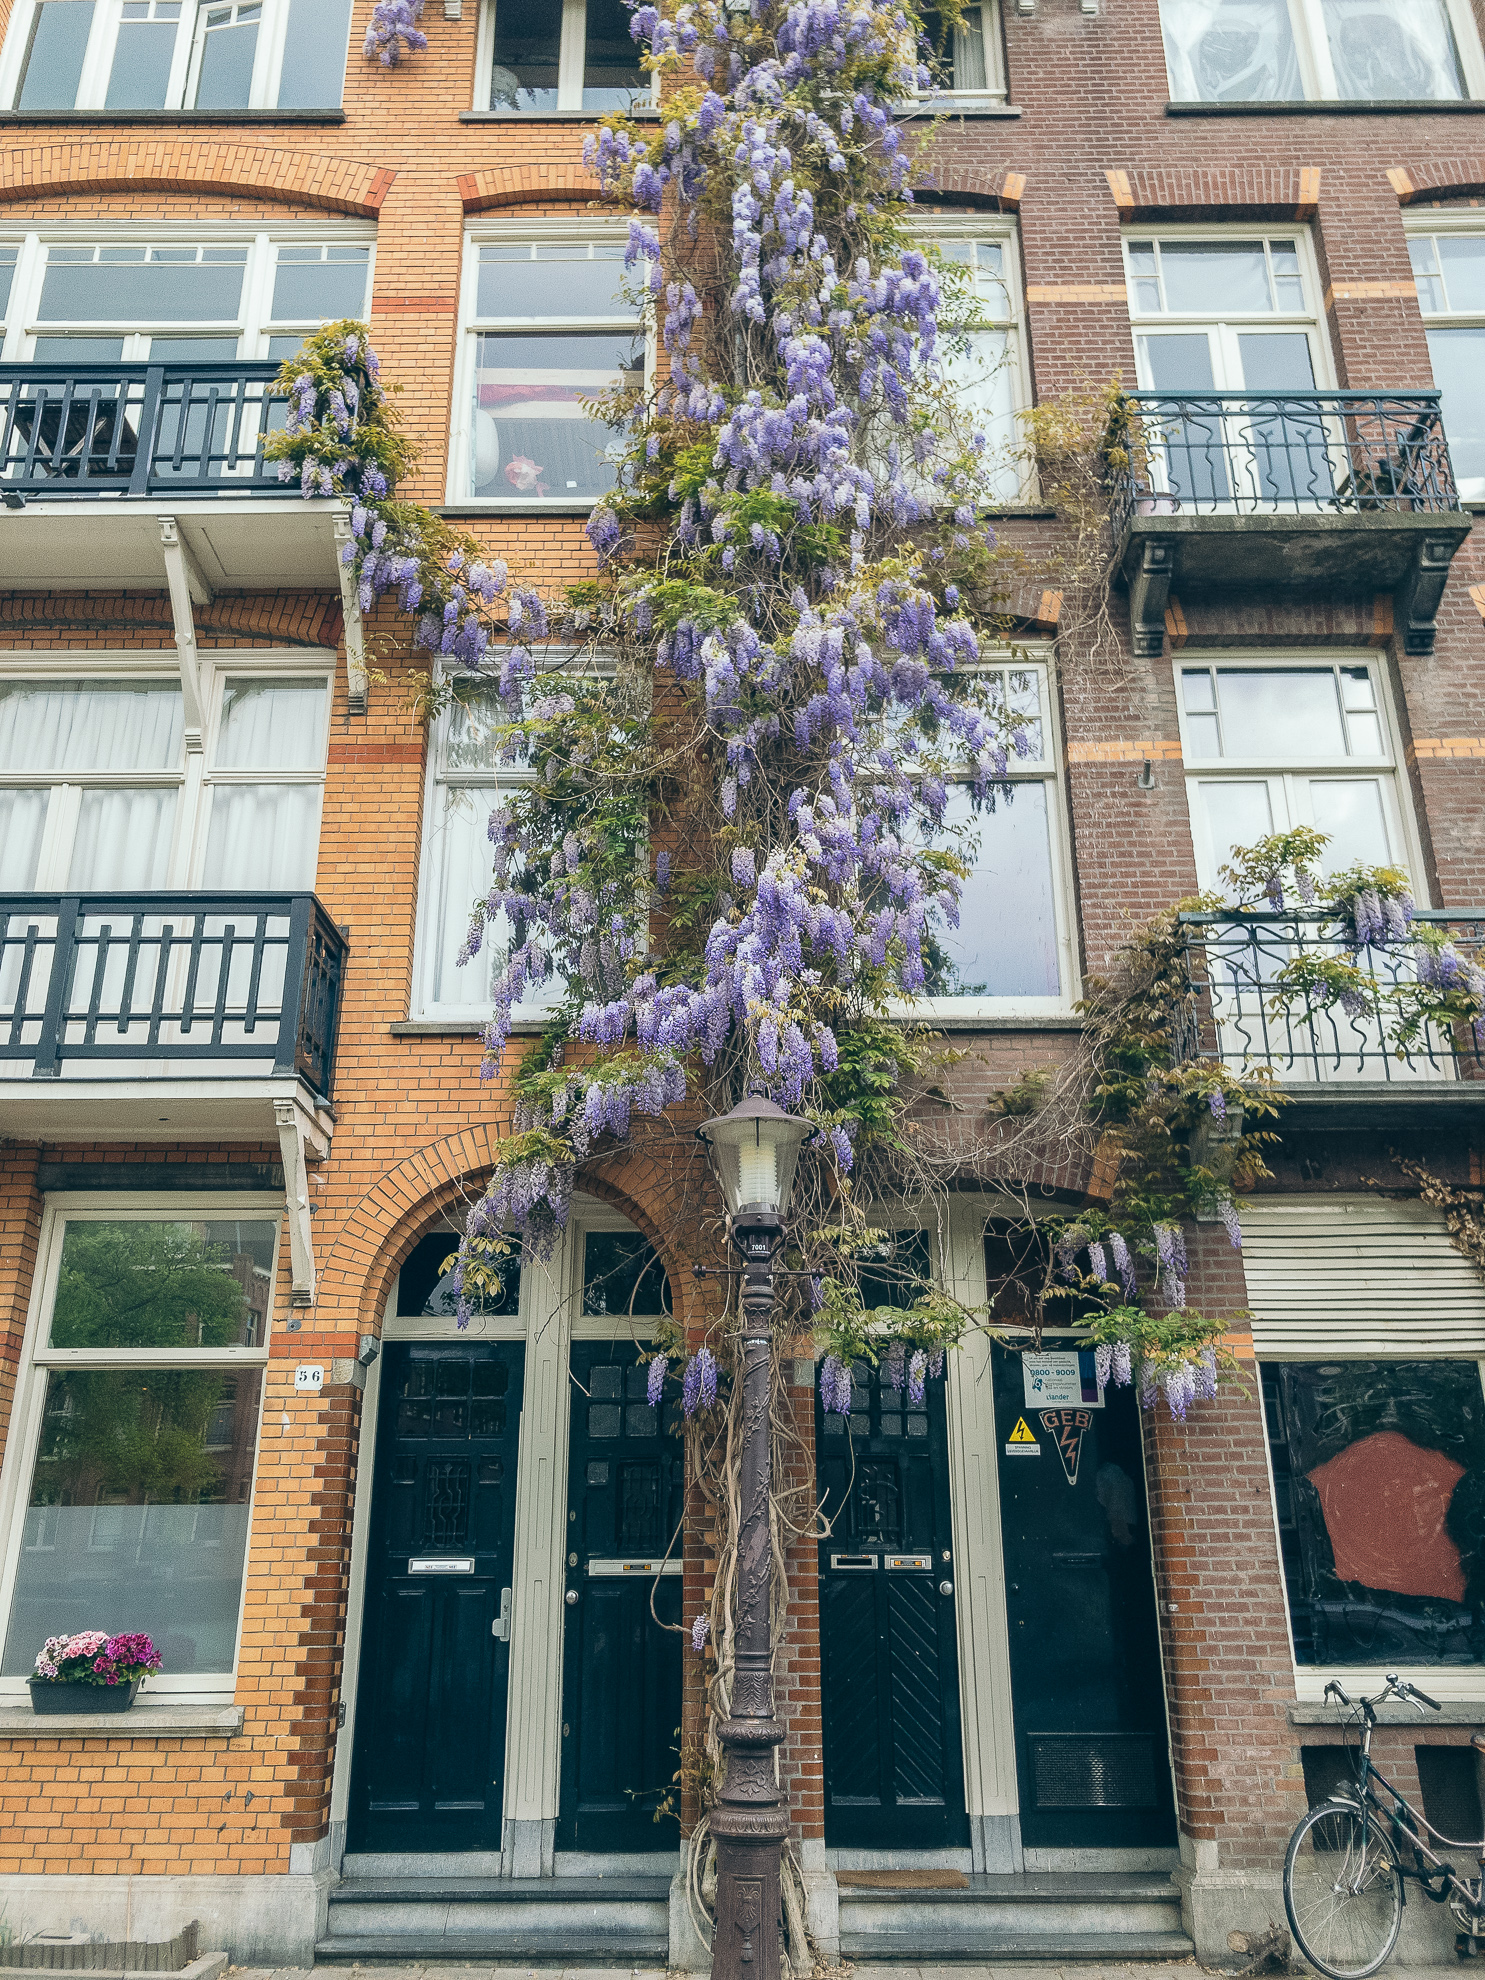 Amsterdam House Wisteria in Bloom Climbing.jpg